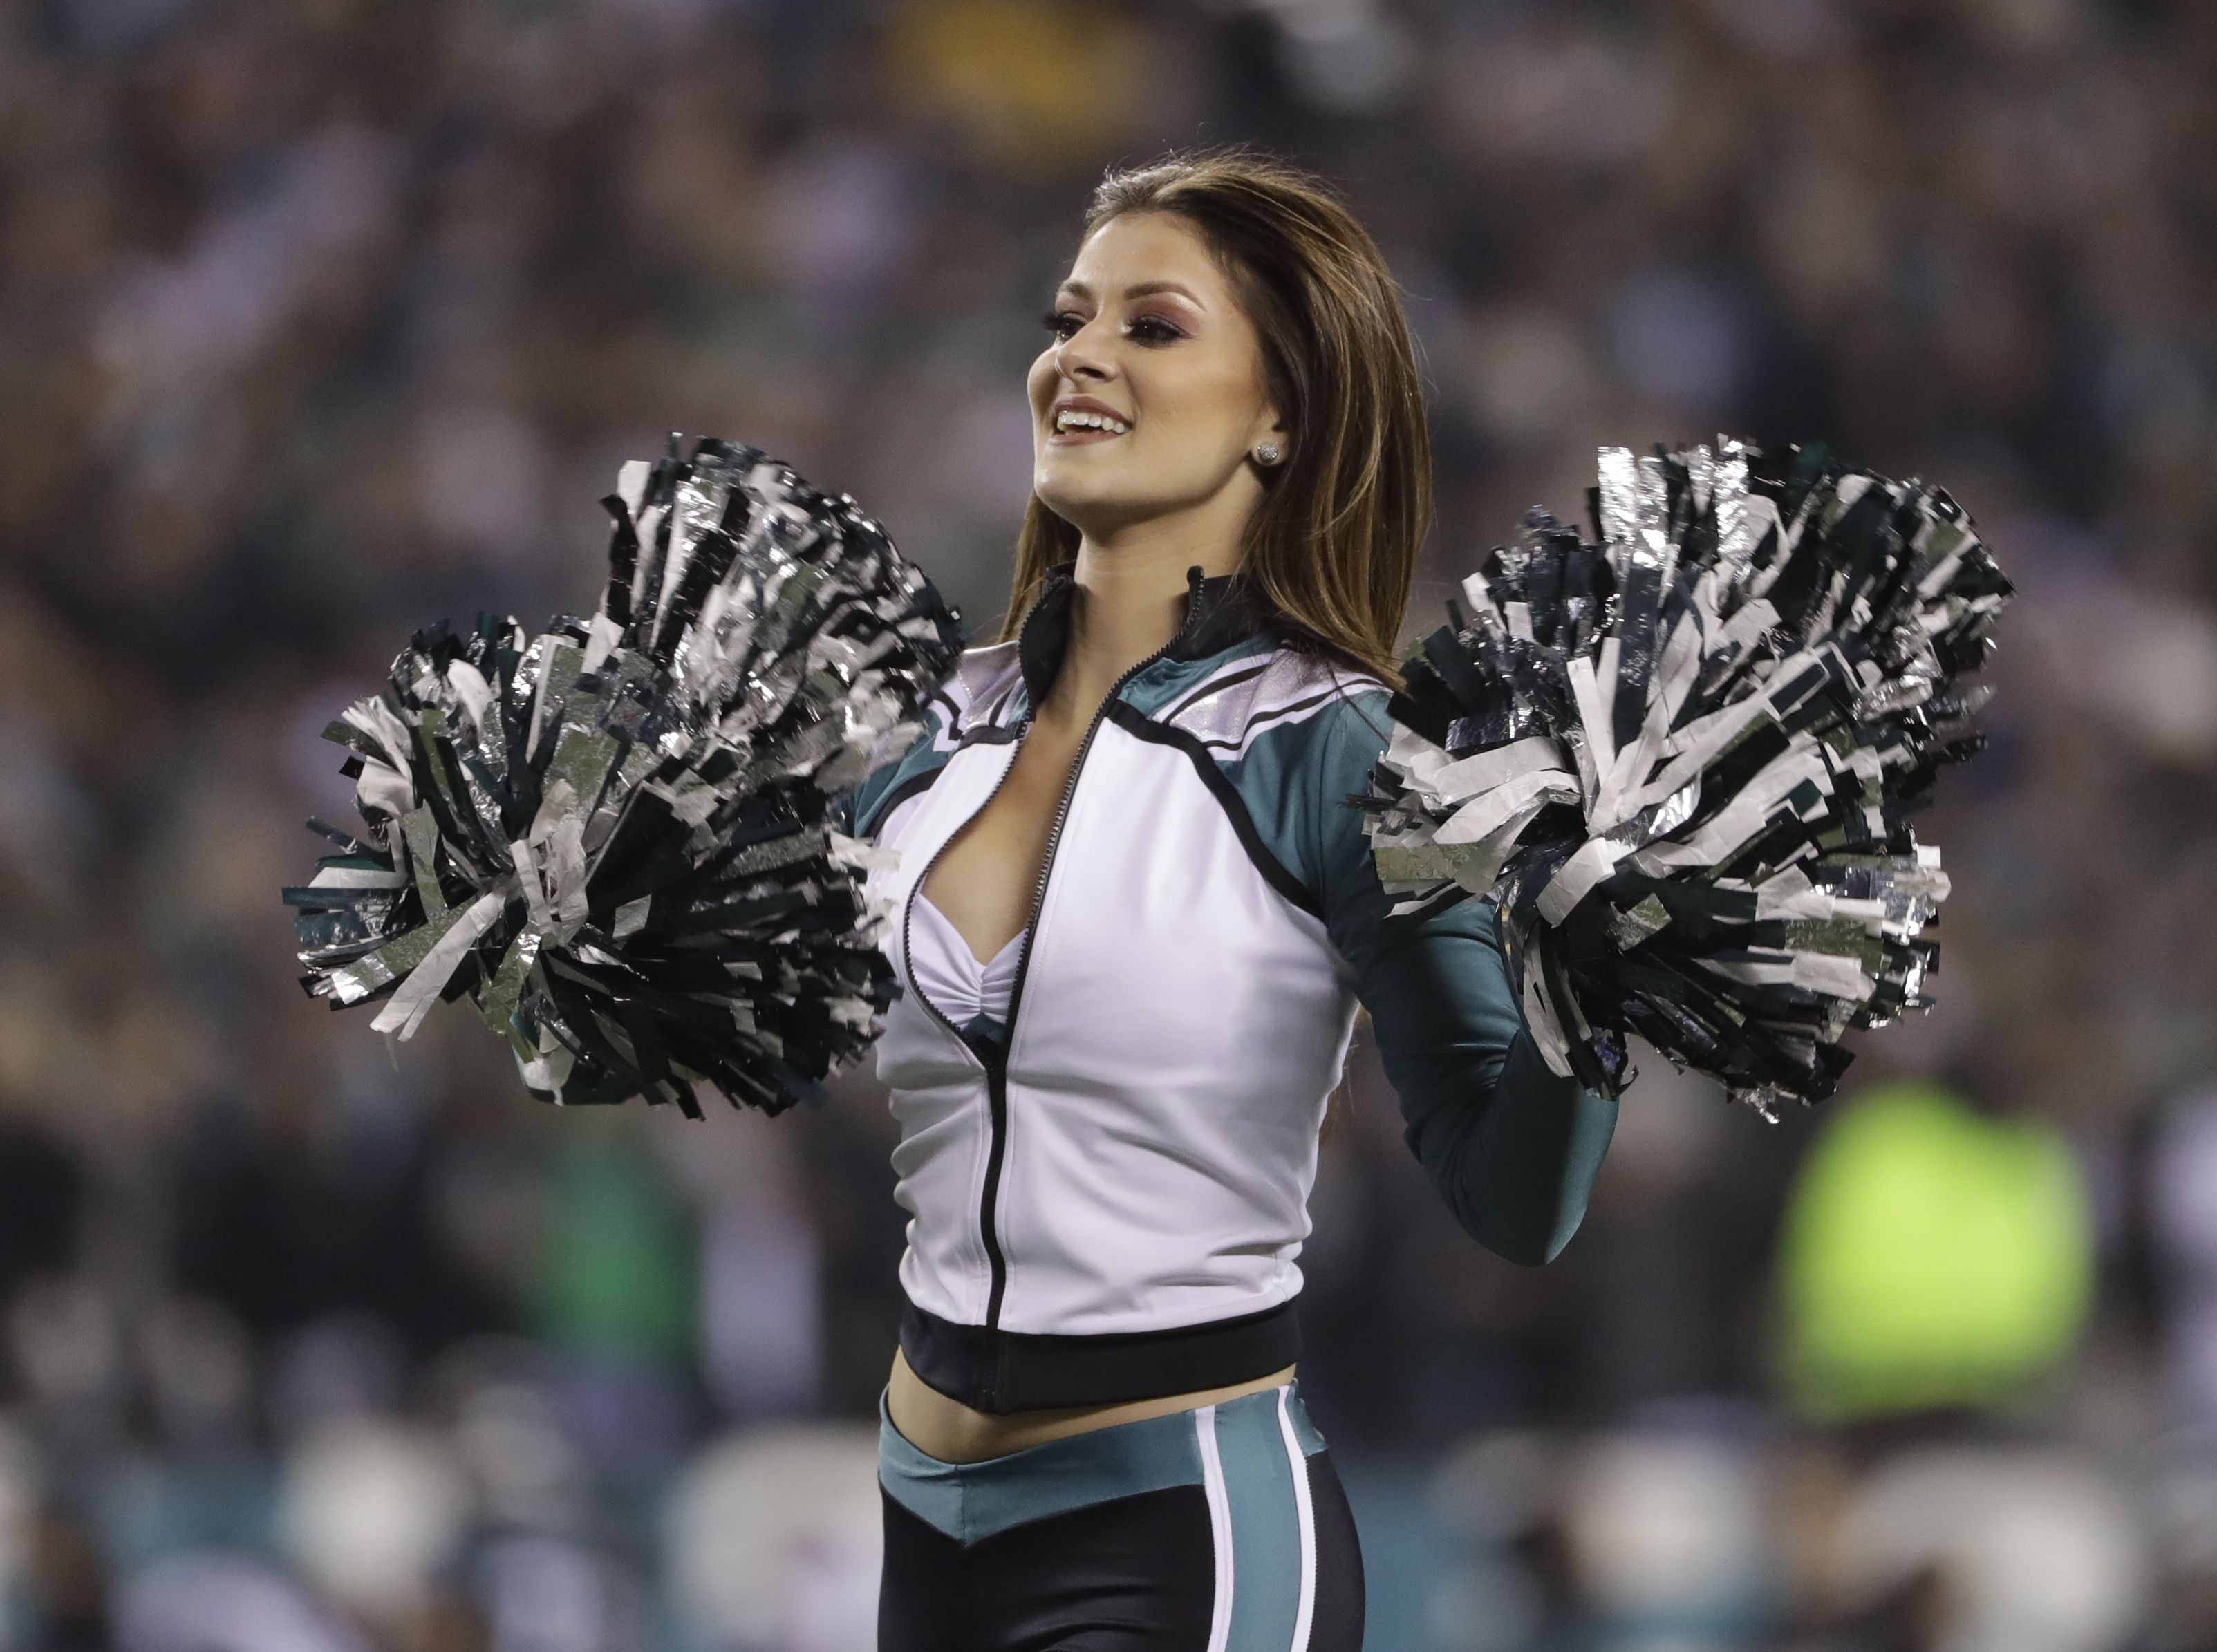 A cheerleader performs during the second half of the NFL football NFC championship game between the Philadelphia Eagles and the Minnesota Vikings, in PhiladelphiaVikings Eagles Football, Philadelphia, USA - 21 Jan 2018